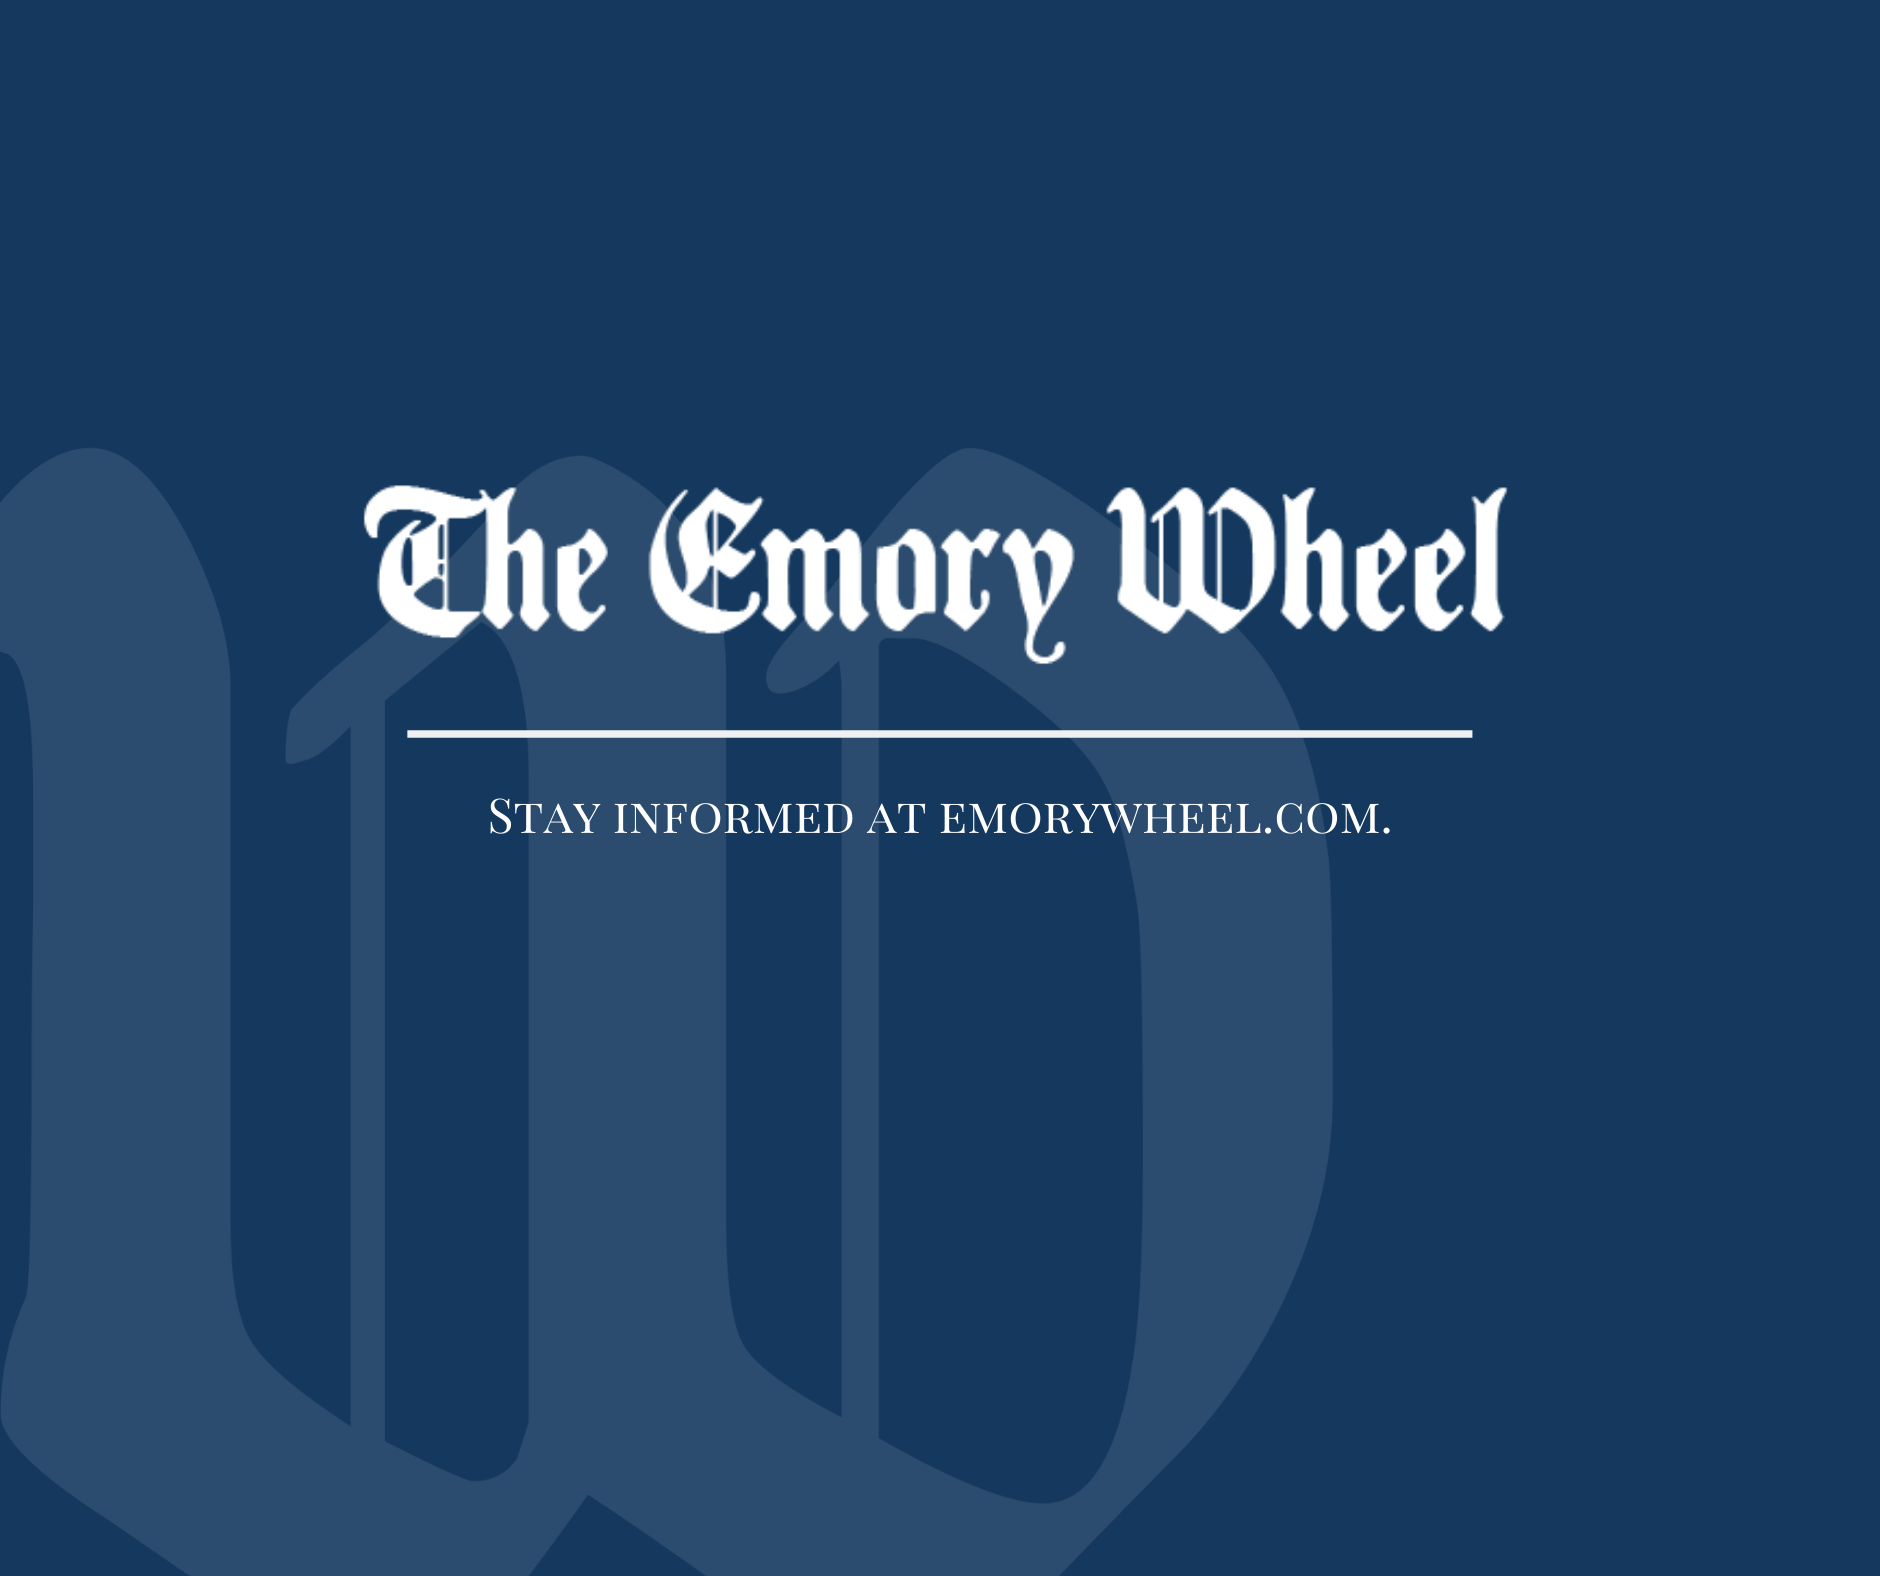 emorywheel.com: Non-Black POC, It's Time to Educate Ourselves and Become True Allies